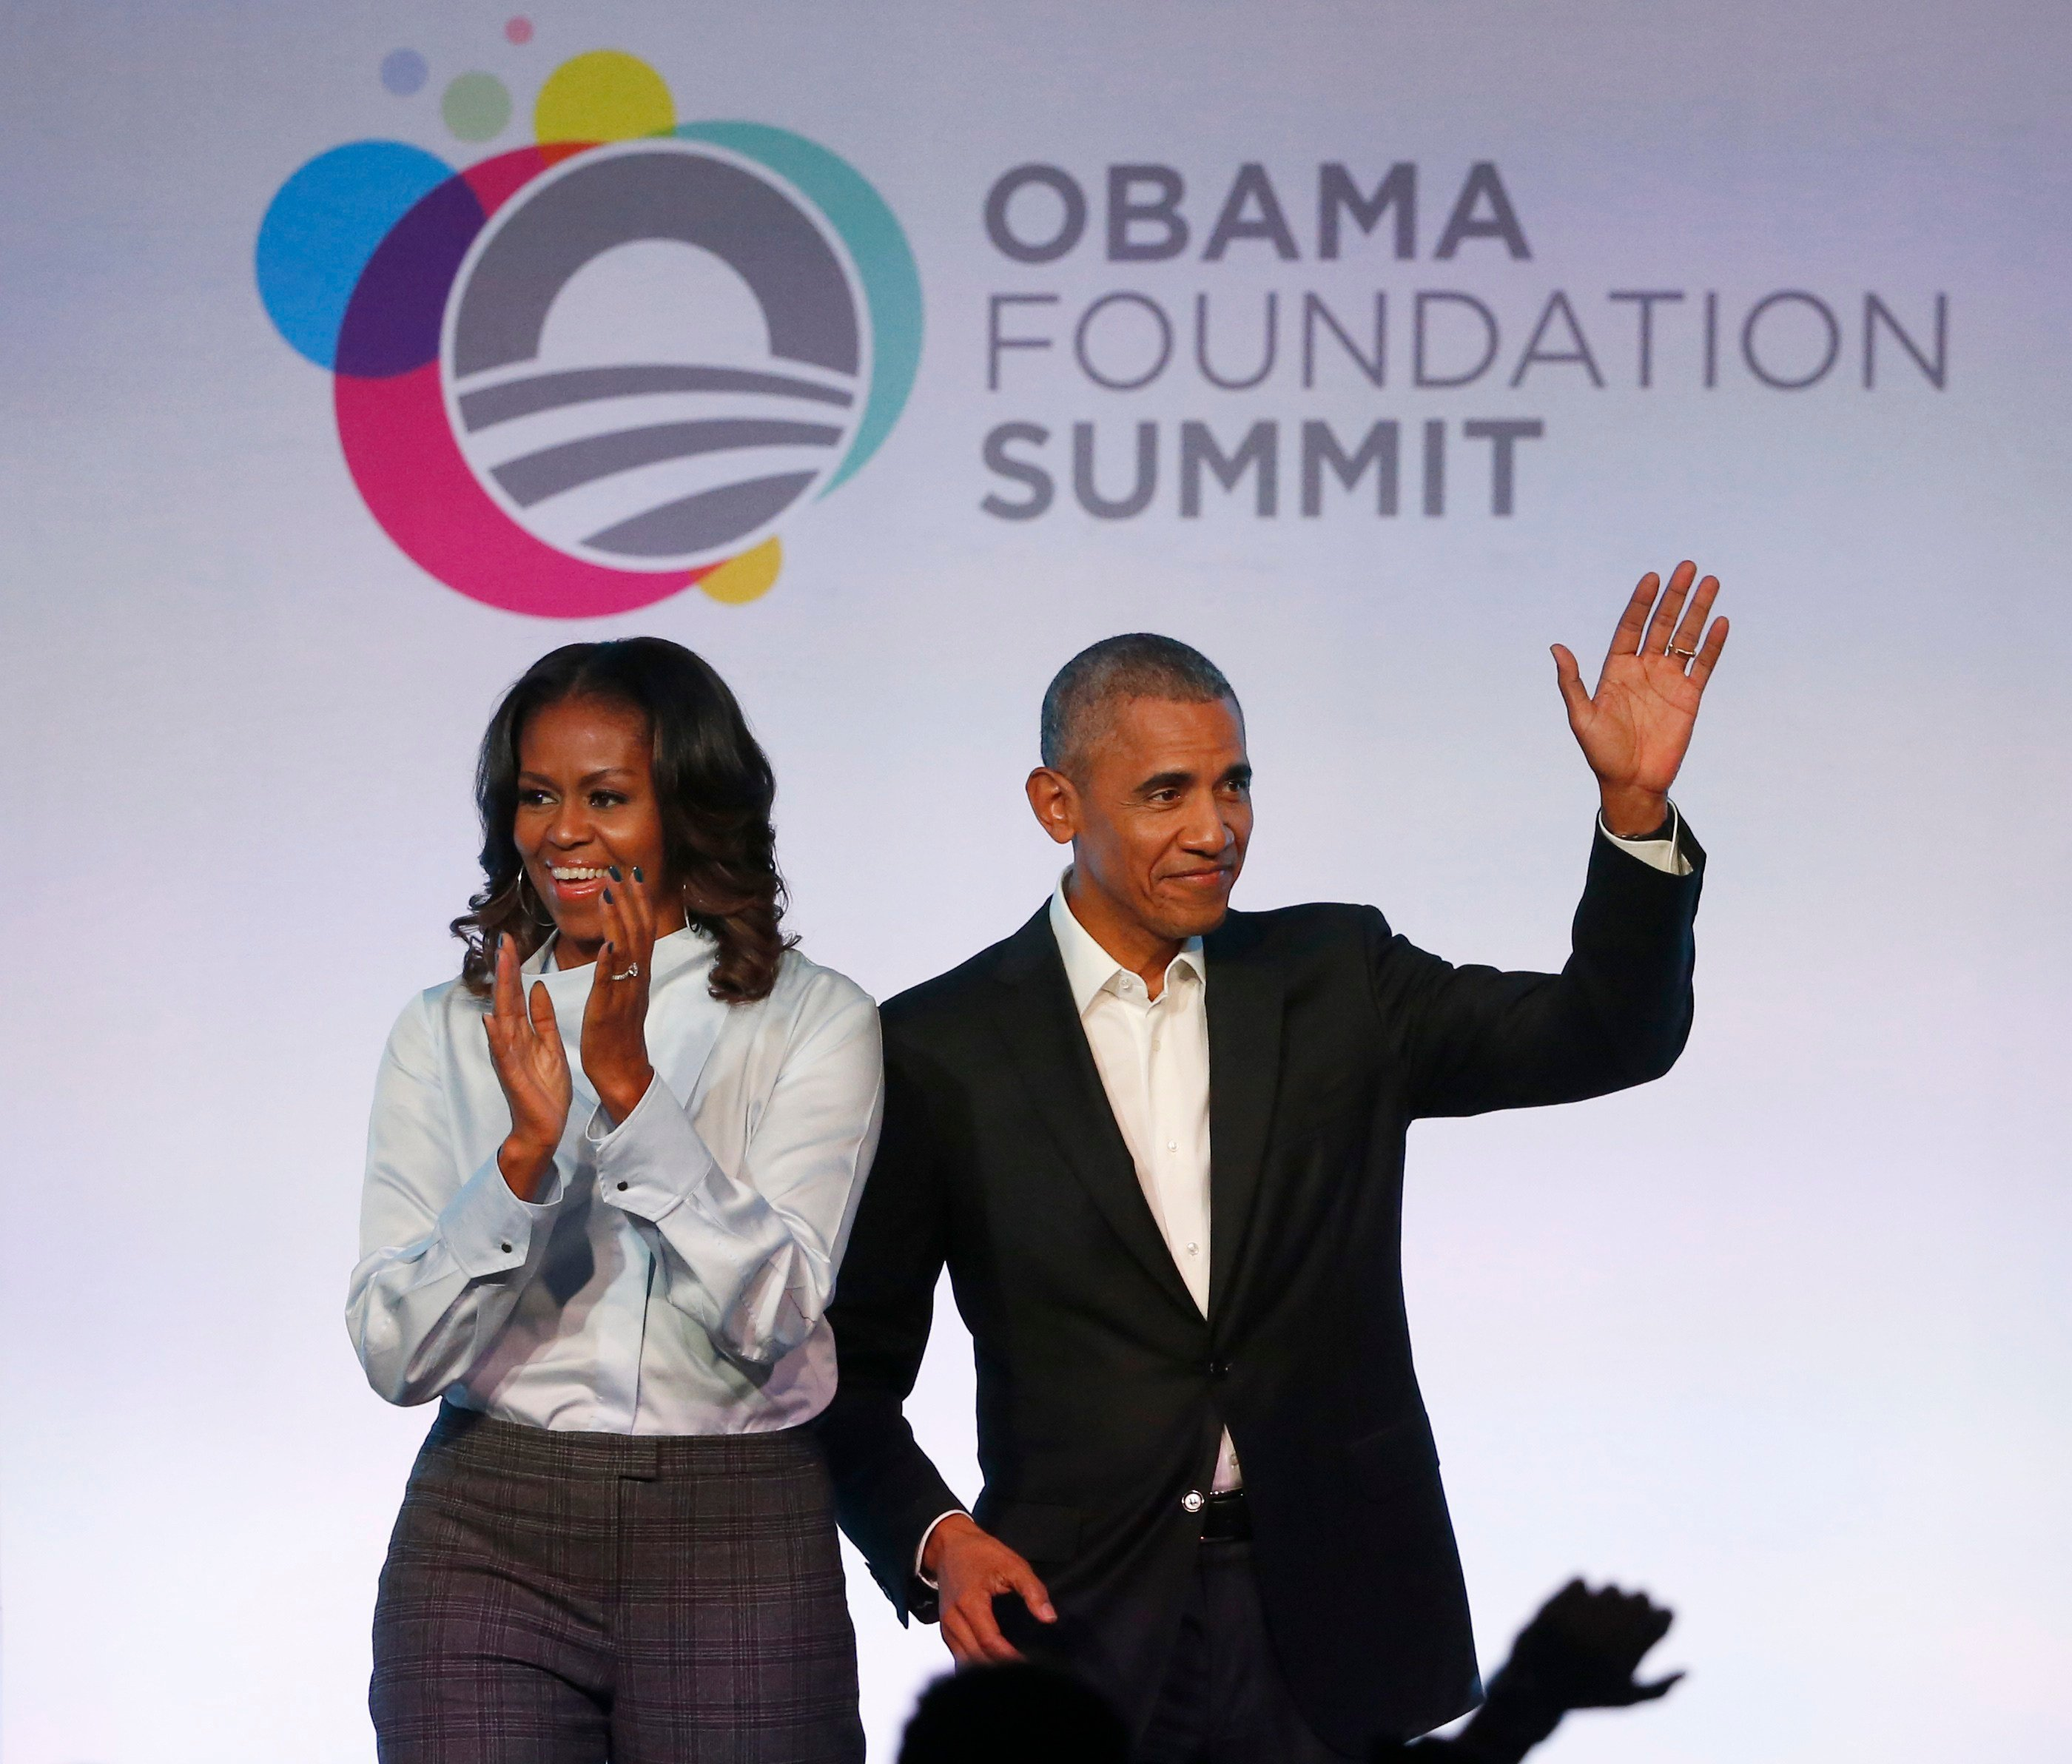 Former President Barack Obama, right, and former first lady Michelle Obama arrive for the first session of the Obama Foundation Summit in Chicago.